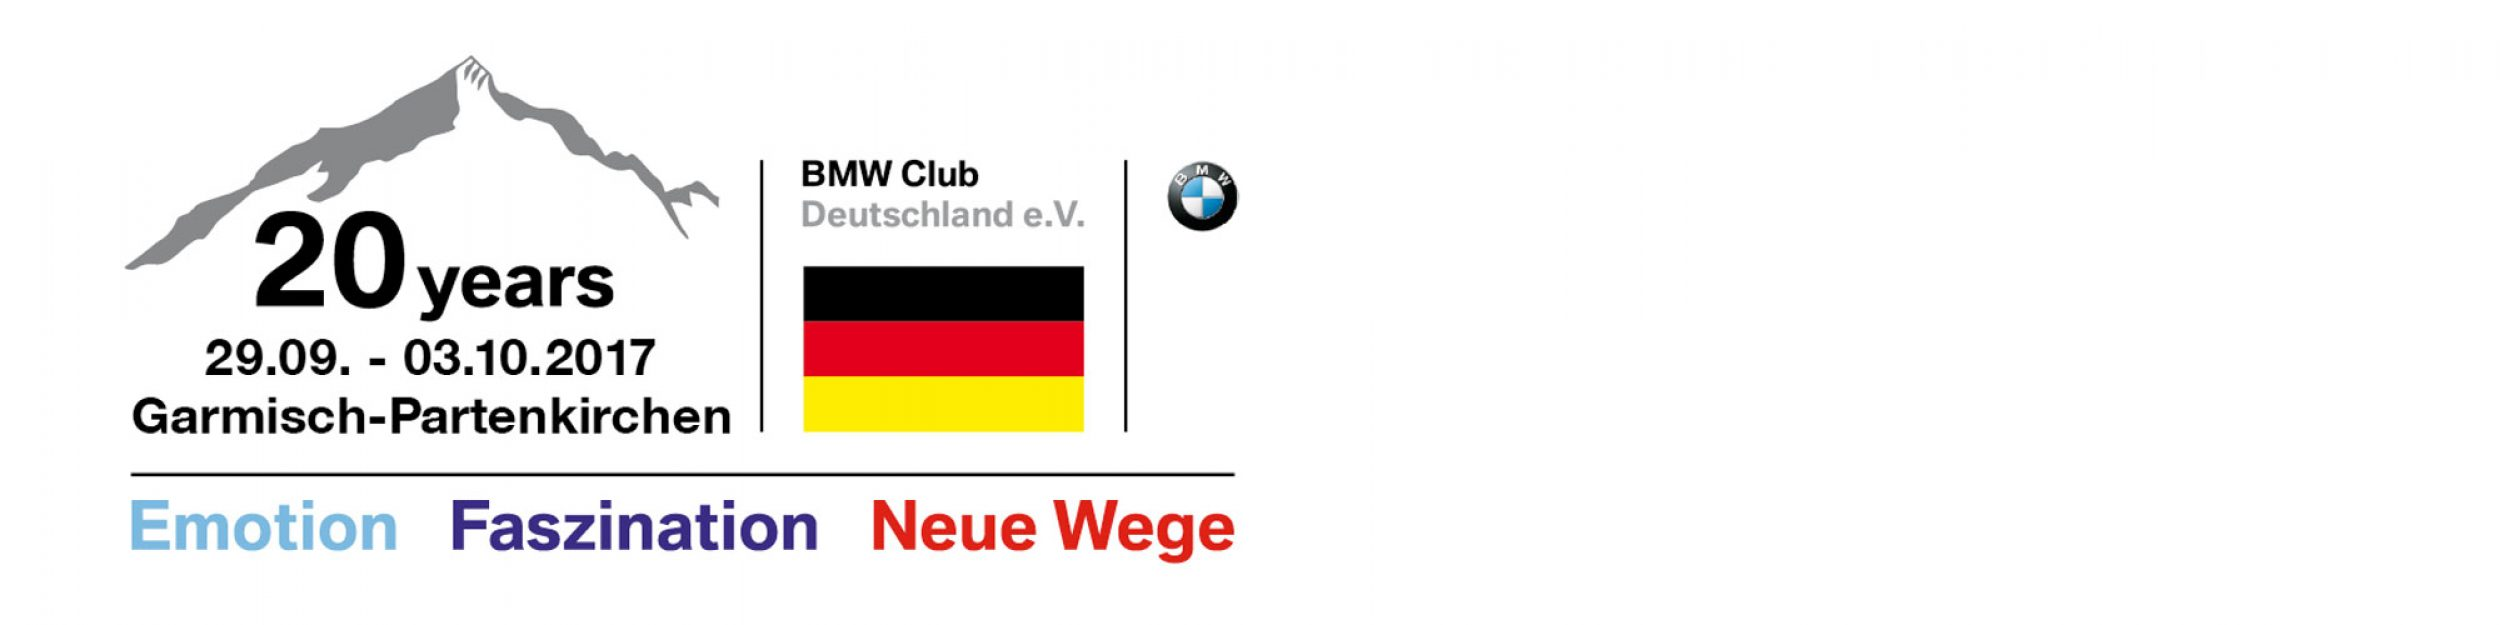 20years BMW Club Deutschland e.V.